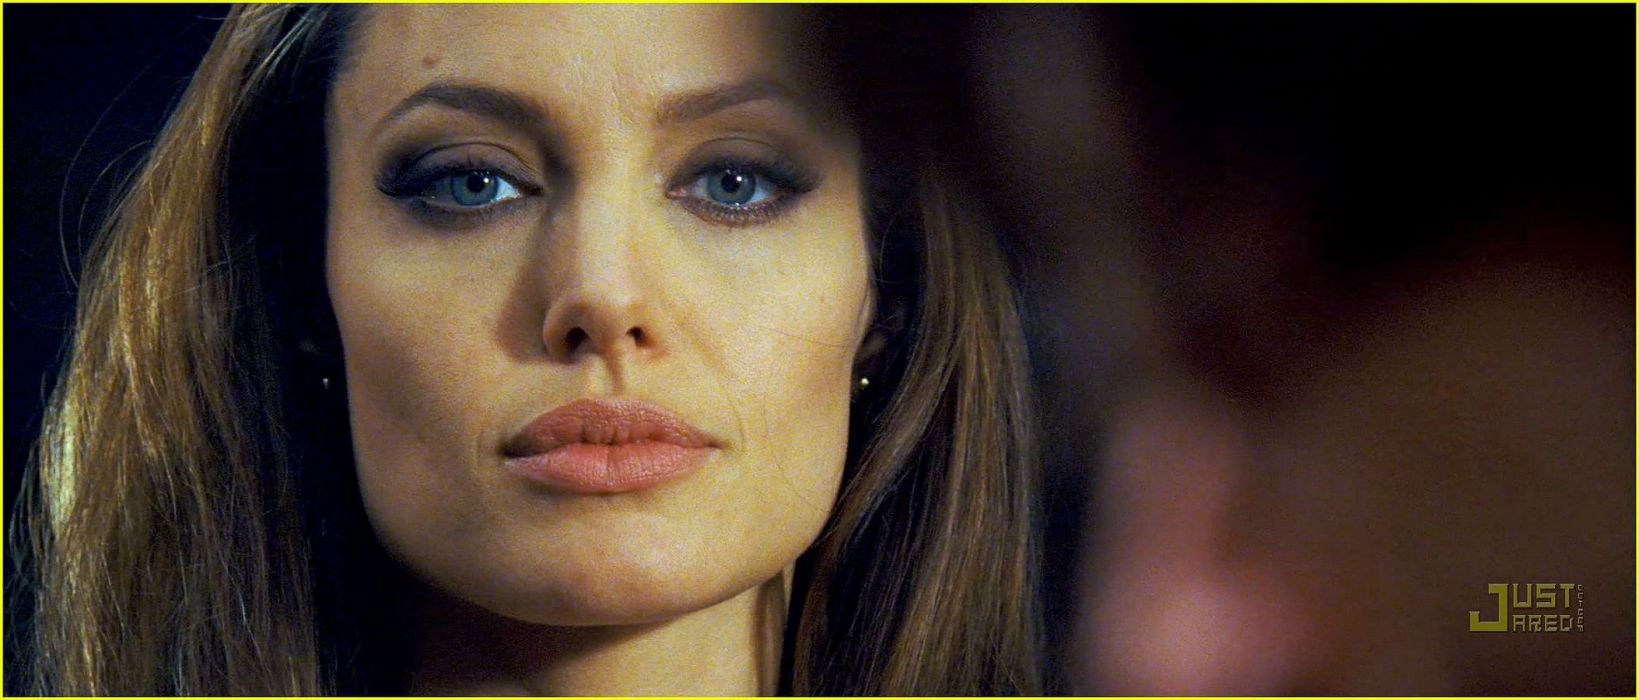 WANTED action crime fantasy sci-fi jolie (55) wallpaper